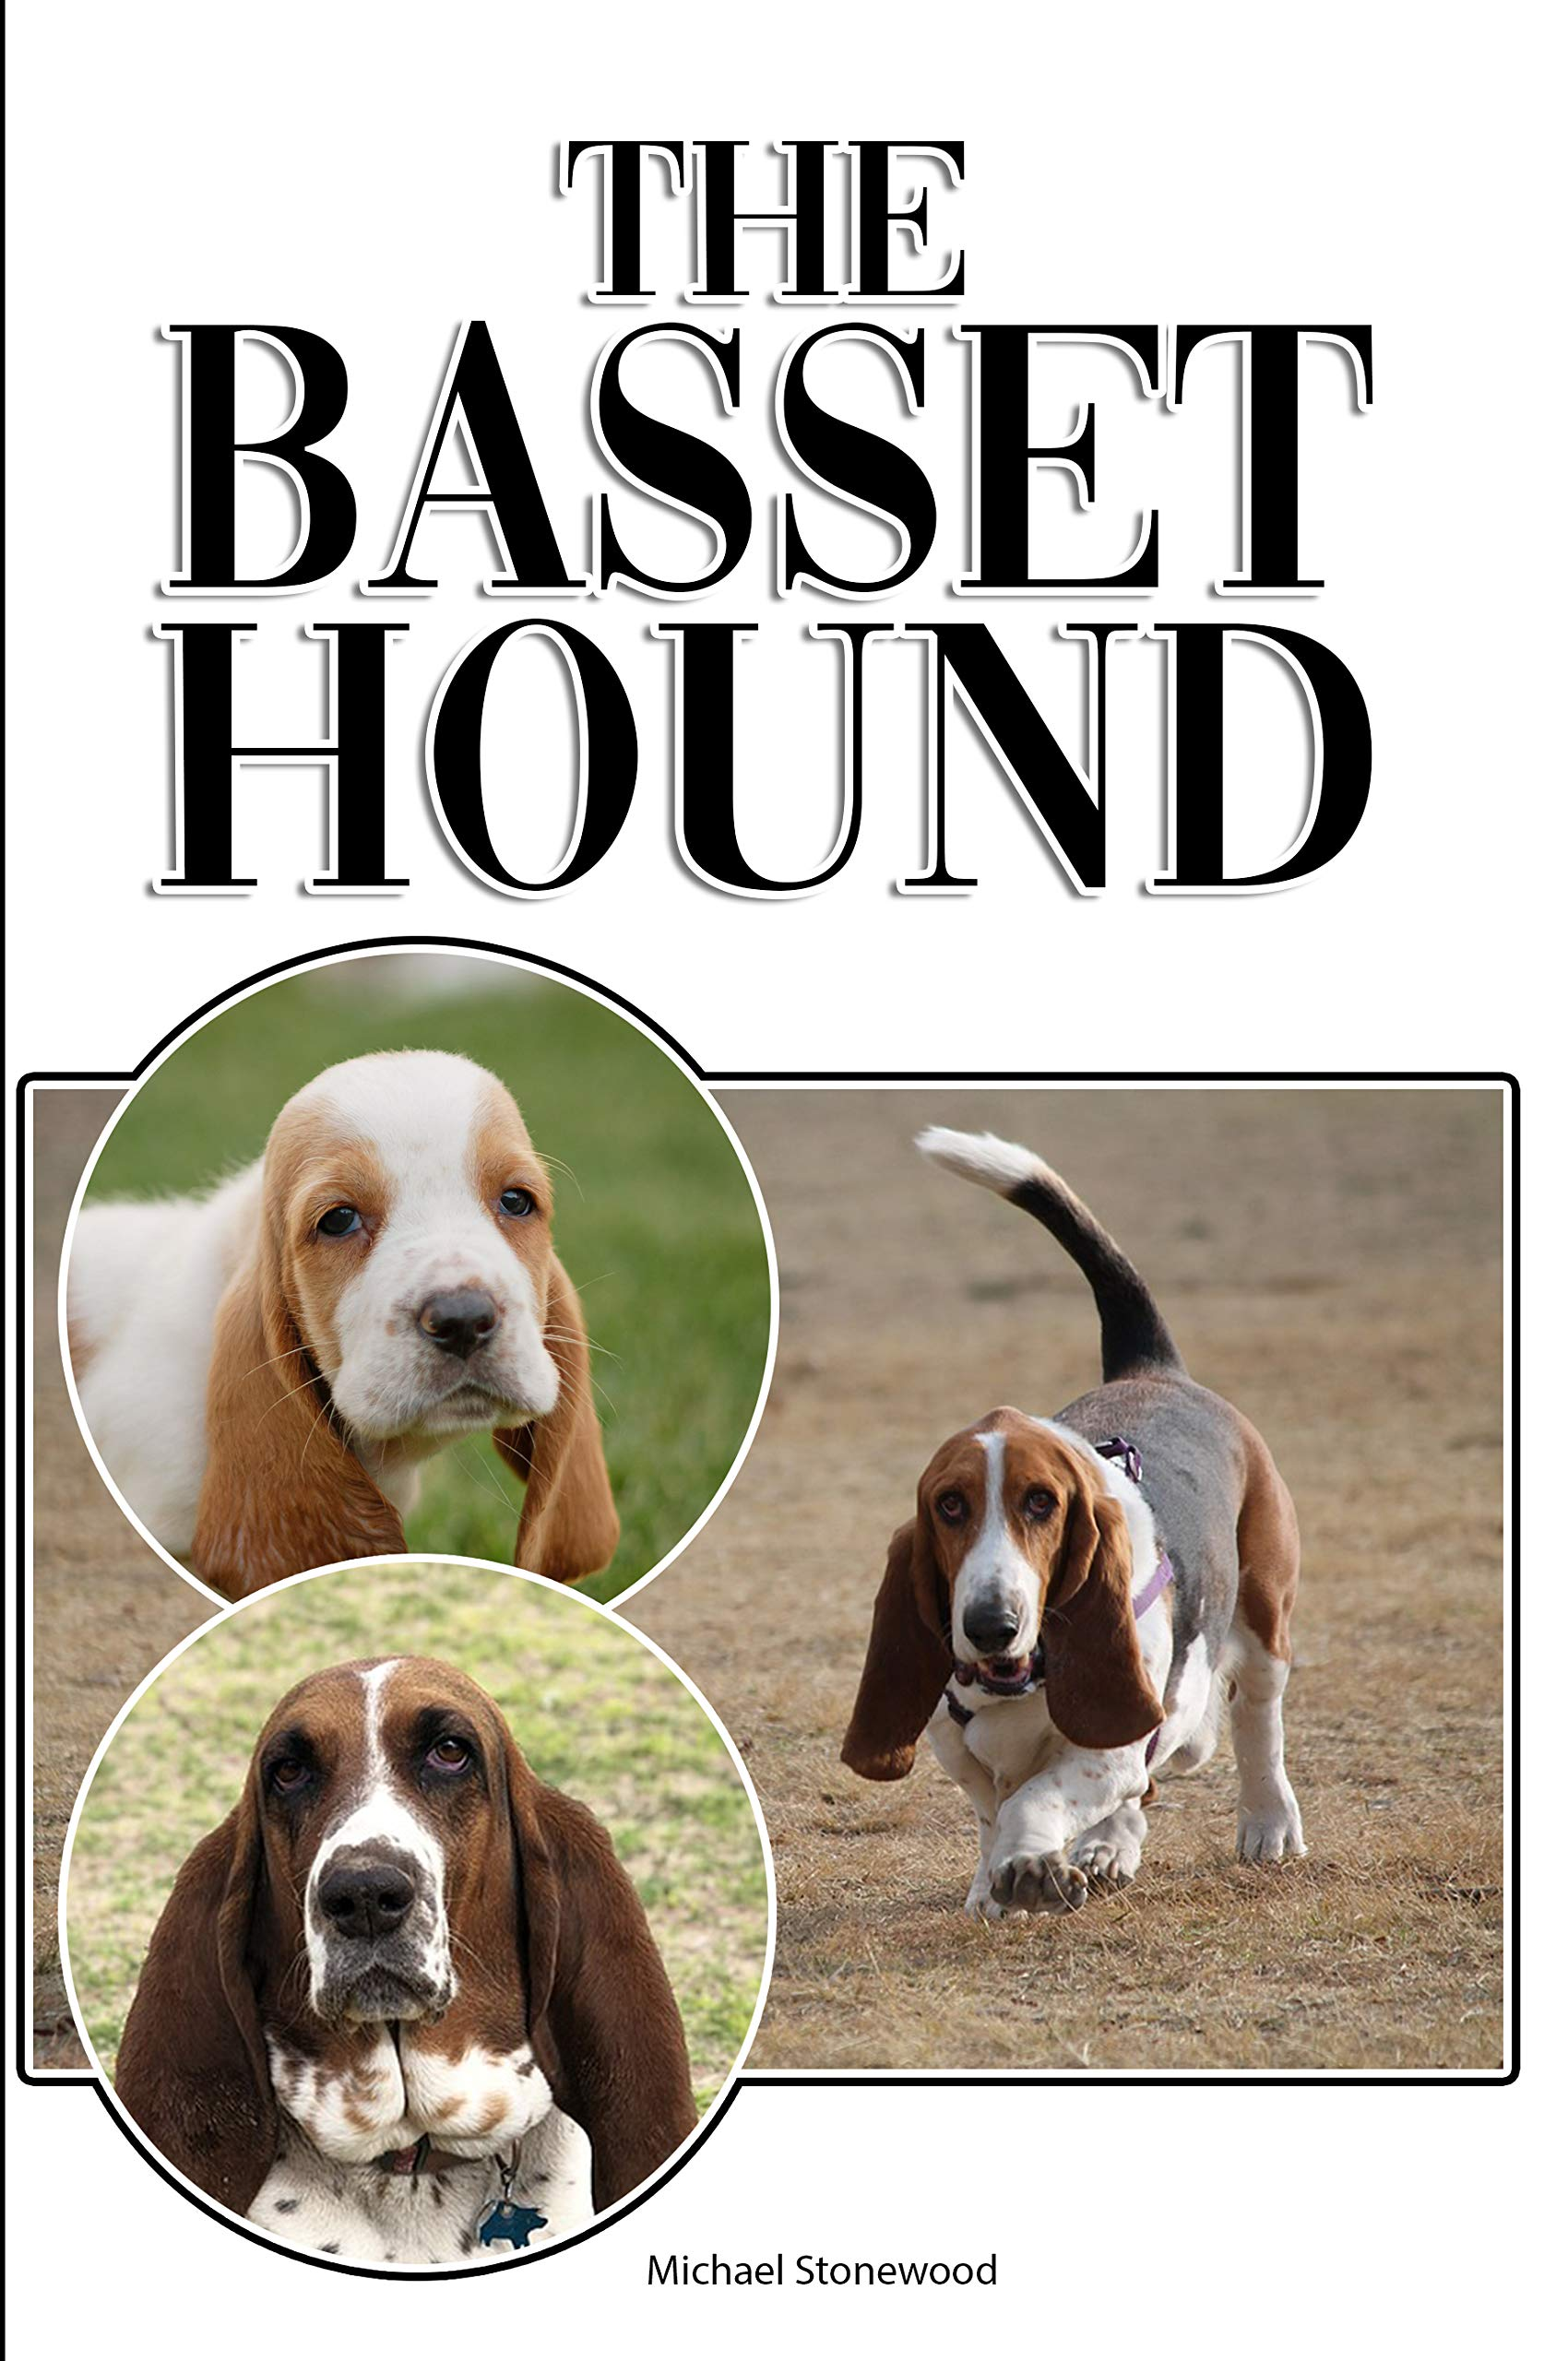 The Basset Hound: A Complete and Comprehensive Beginners Guide to: Buying, Owning, Health, Grooming, Training, Obedience, Understanding and Caring for Your Basset Hound